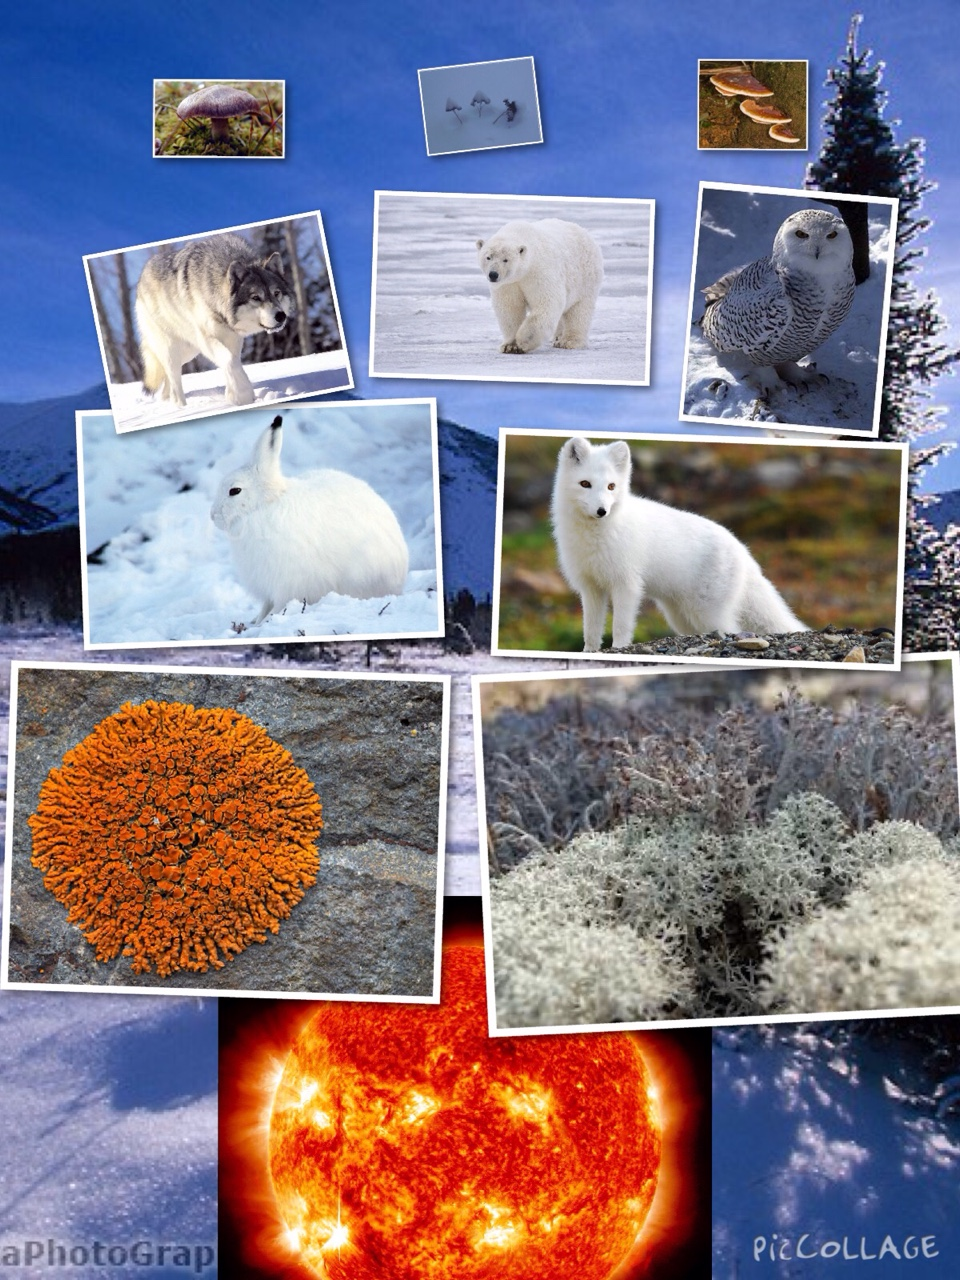 The Food Chain And Flow Of Energy In An Arctic Tundra Biome